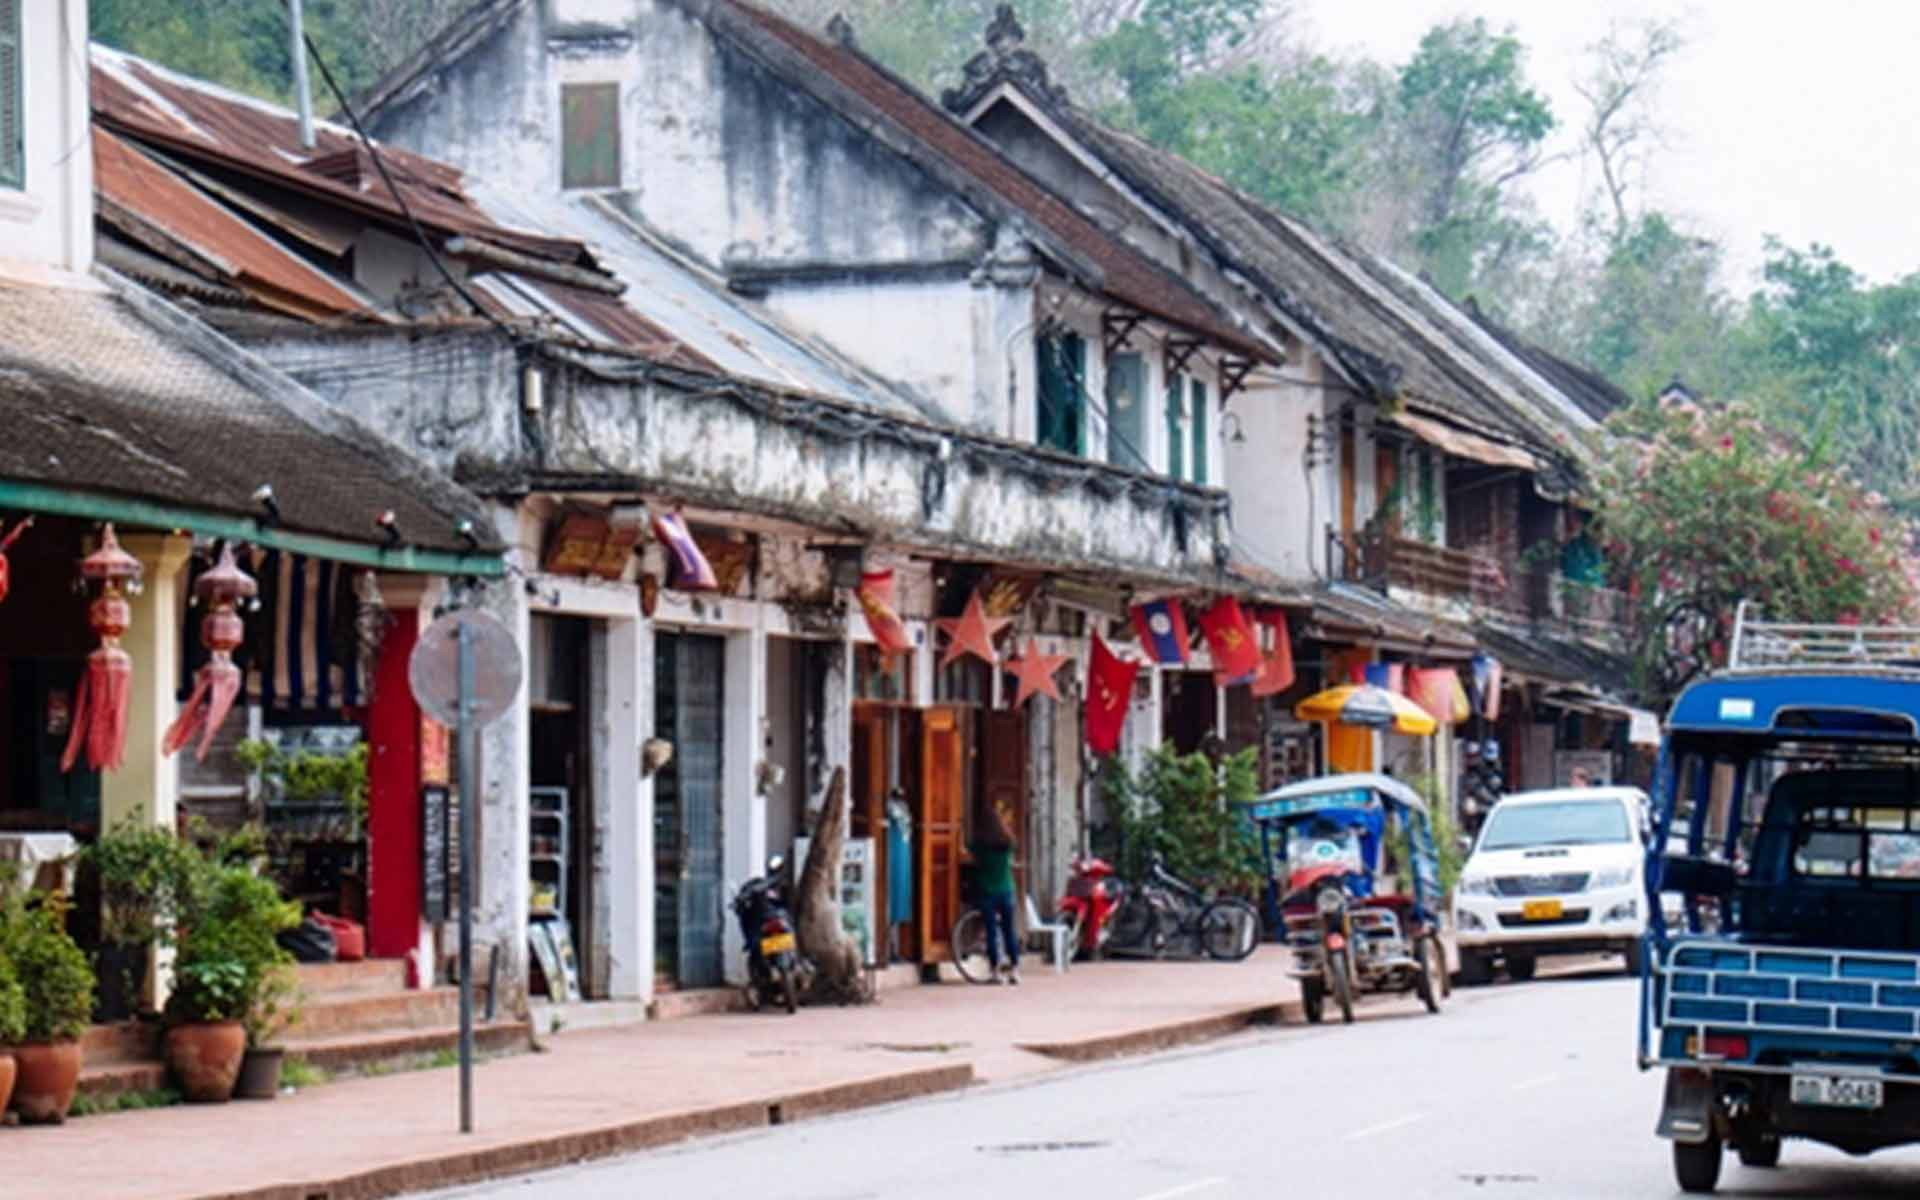 Laos - the only country without coastline in Southeast Asia